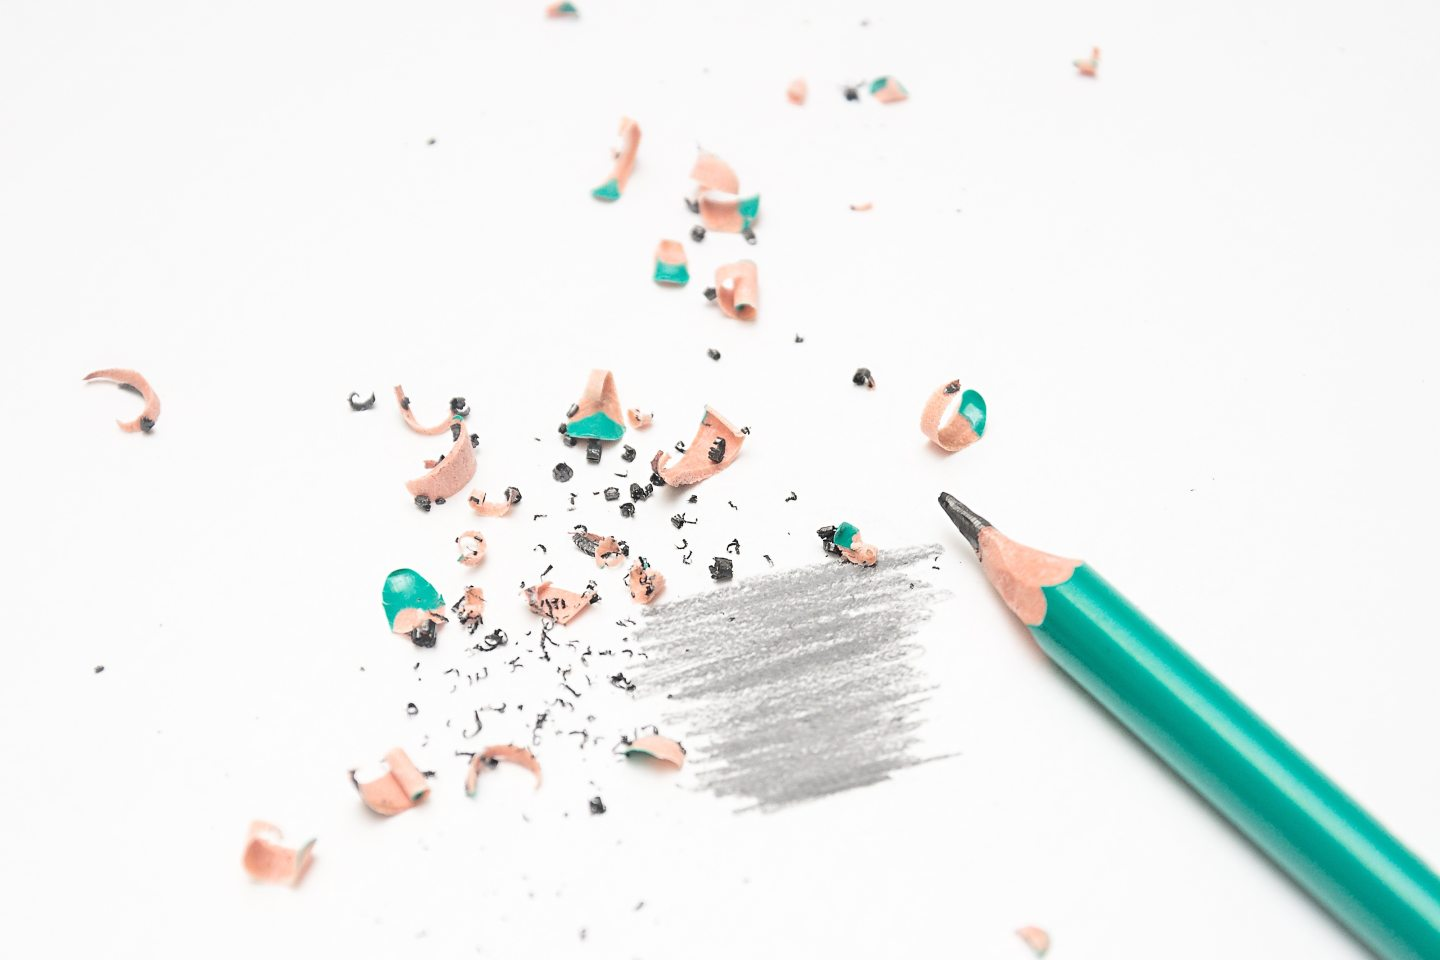 A piece of paper with shavings from a pencil